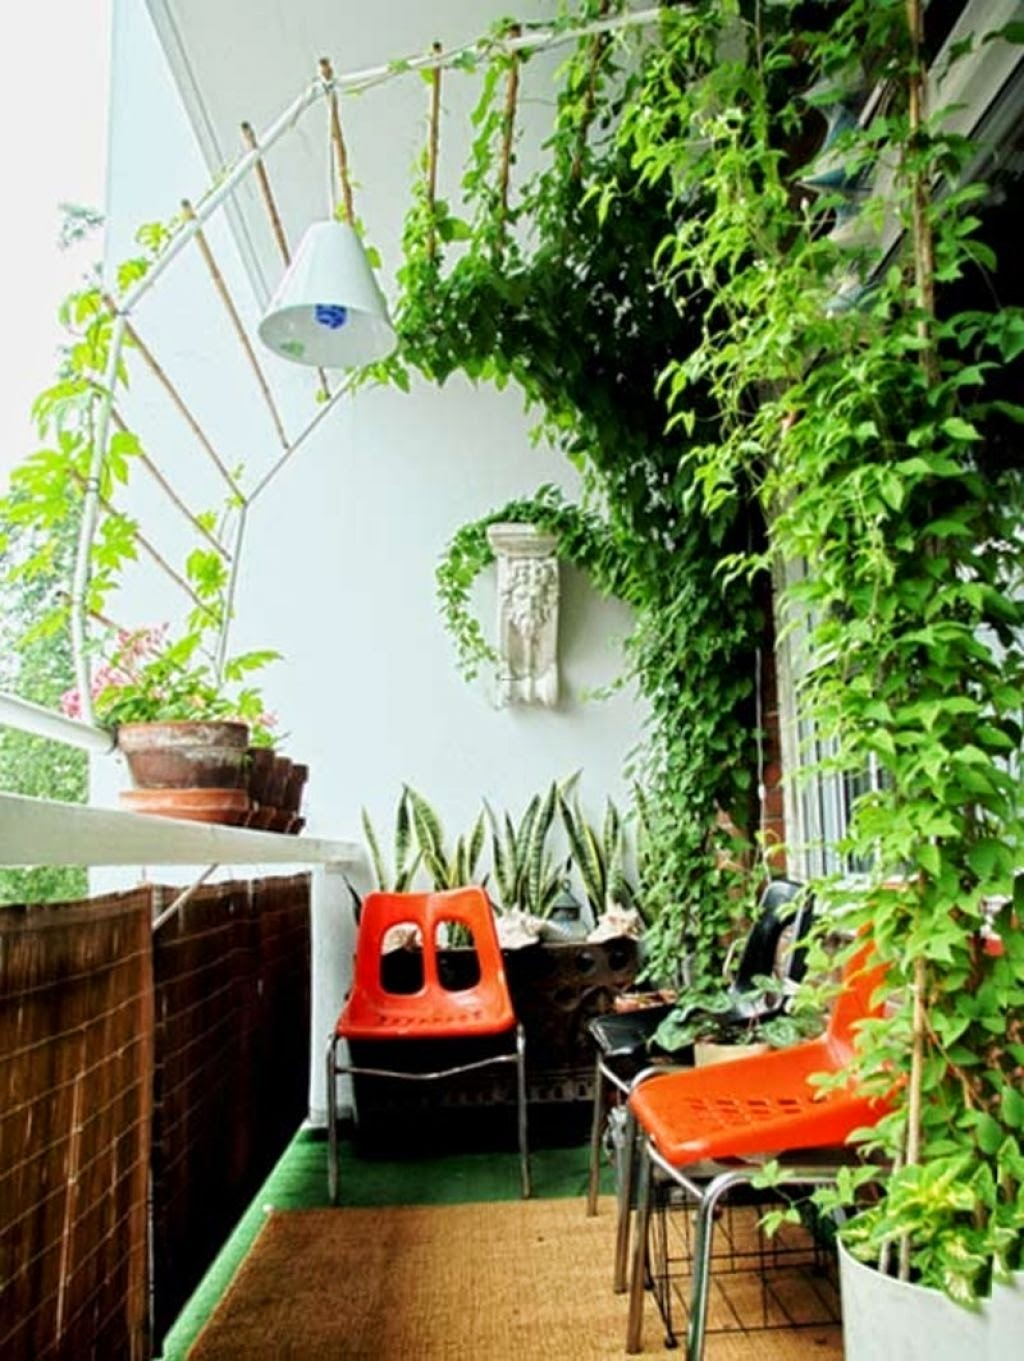 Home garden design for small spaces for Garden designs for small spaces